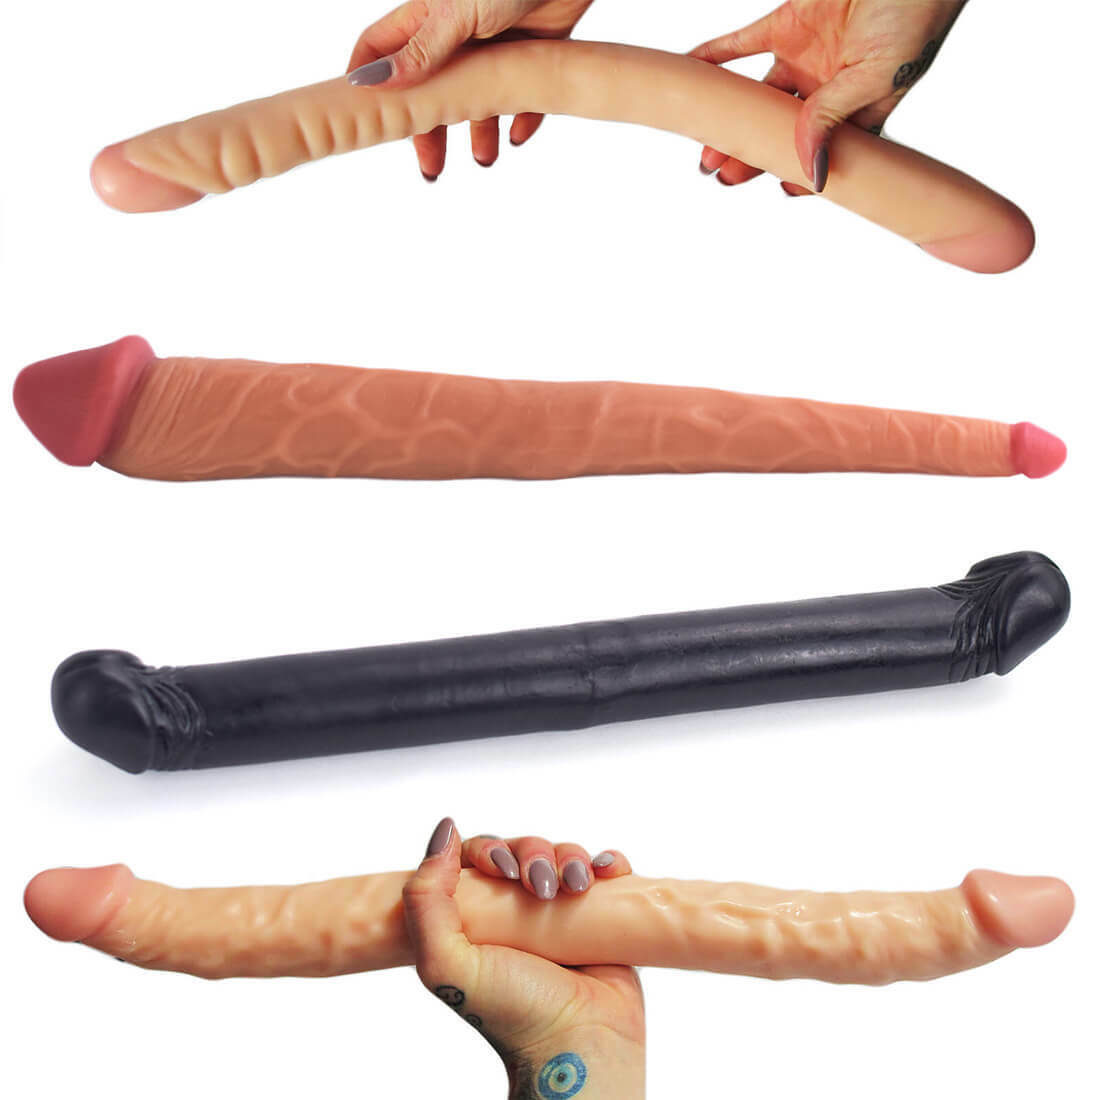 Double Ended Dildo - Double Dong - Double Enders - Adult